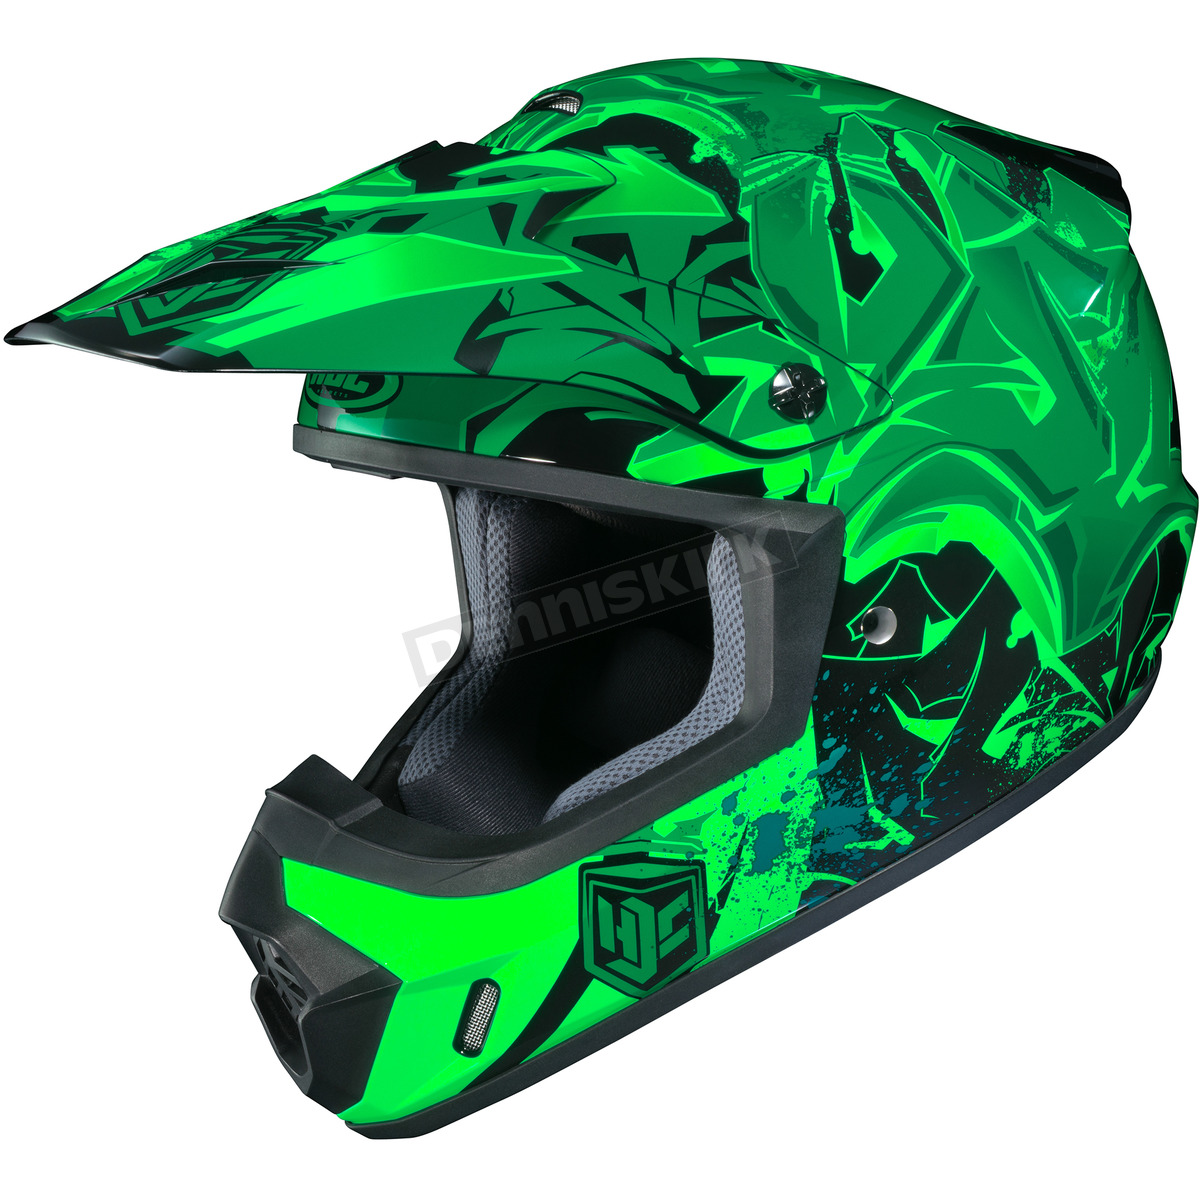 more choices more hjc helmets see more from hjc see more helmets see ...